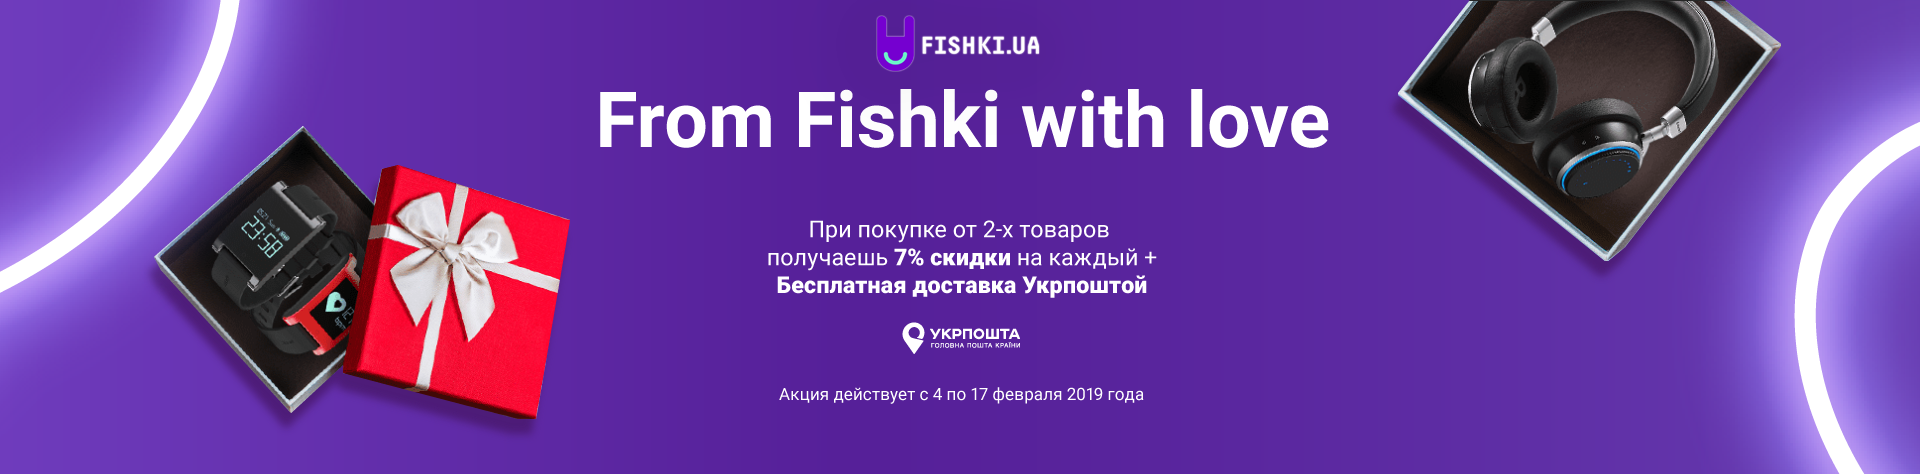 From fishki with love